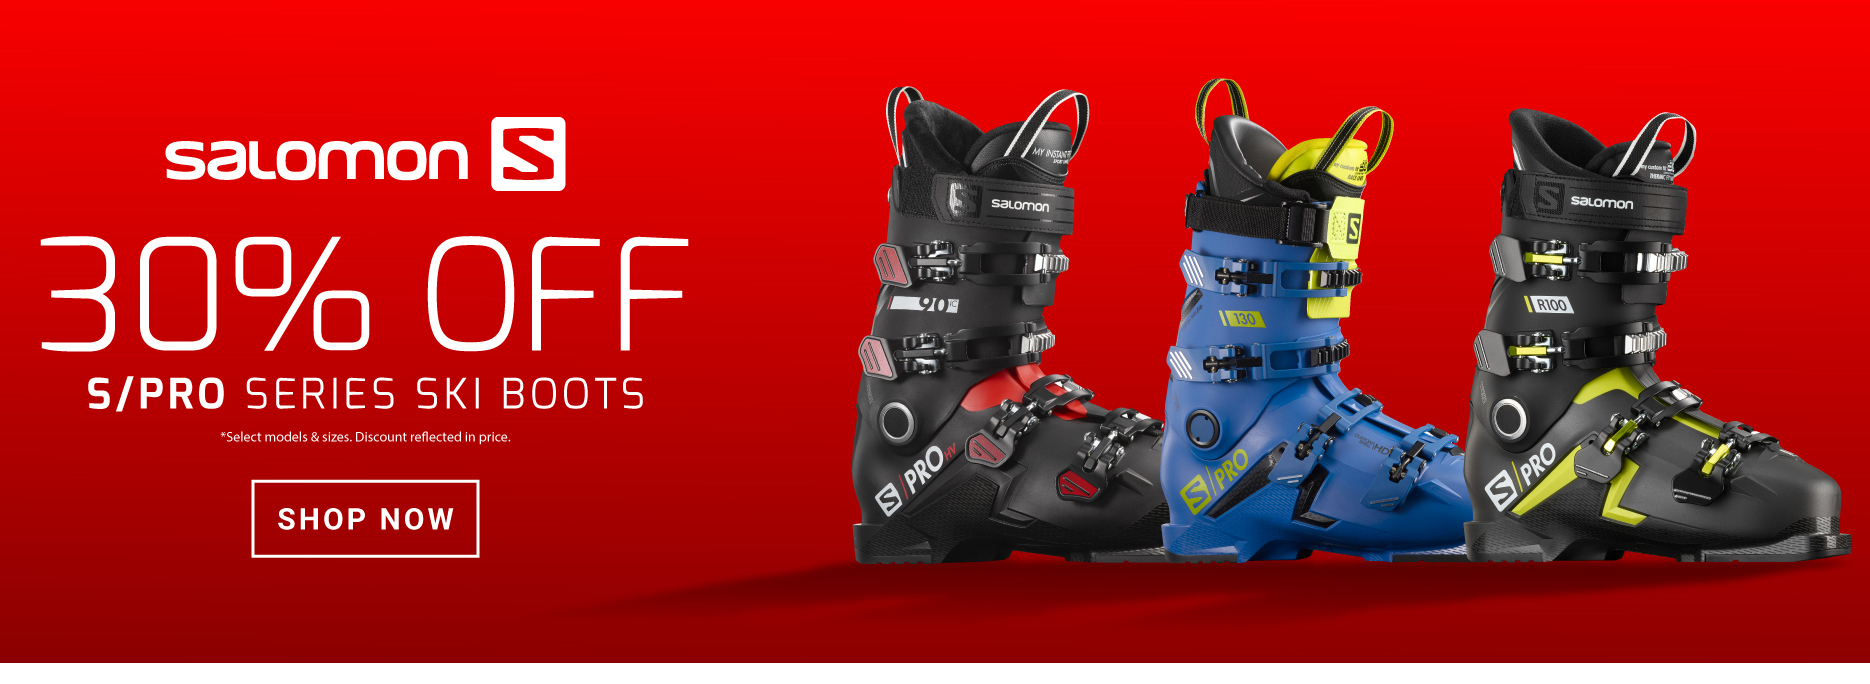 30% OFF S/PRO SERIES SKI BOOTS - FOOTER